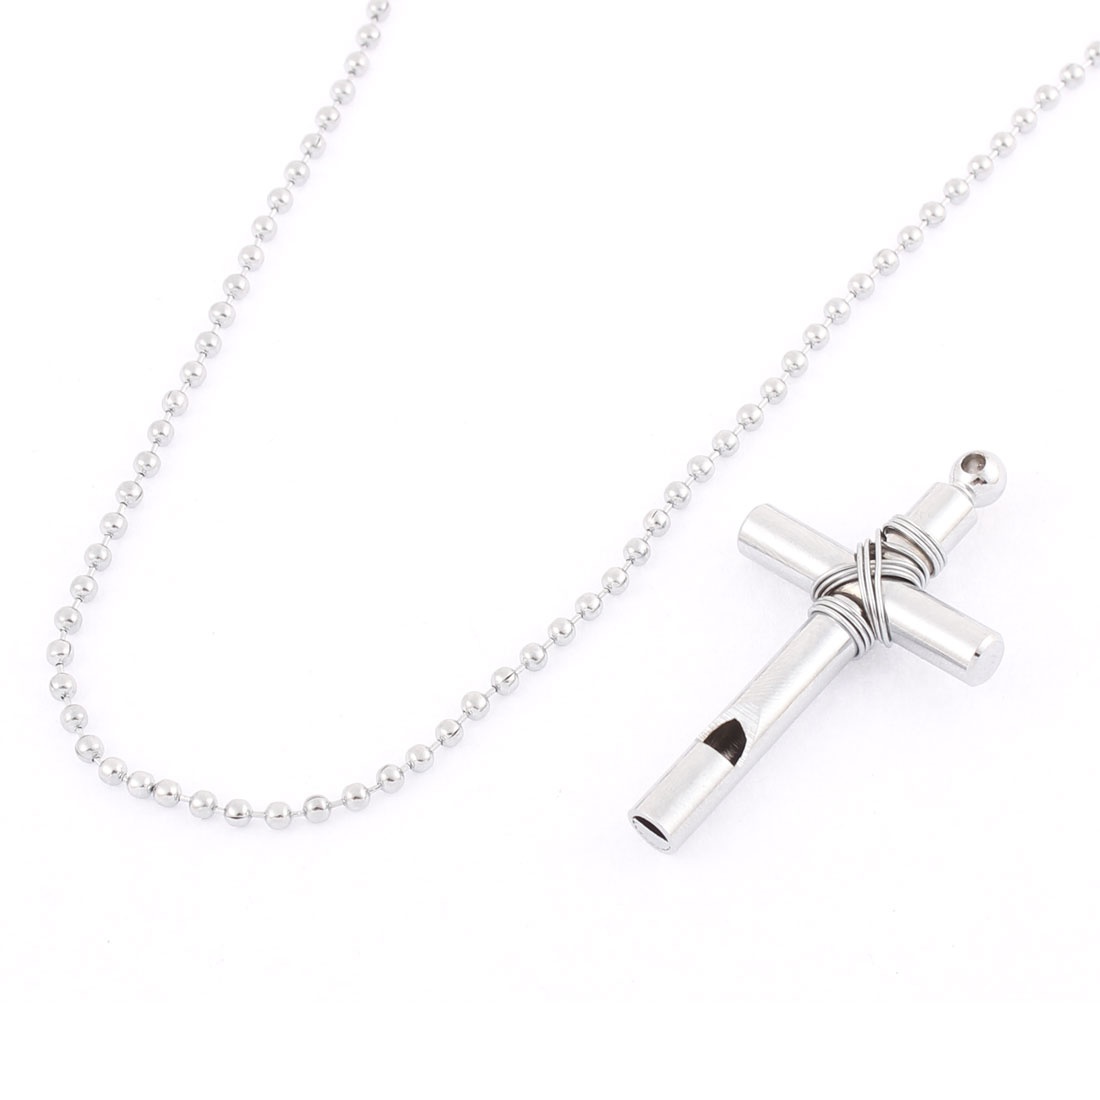 Stainless Steel Cross Whistle Pendant Necklace Silver Tone